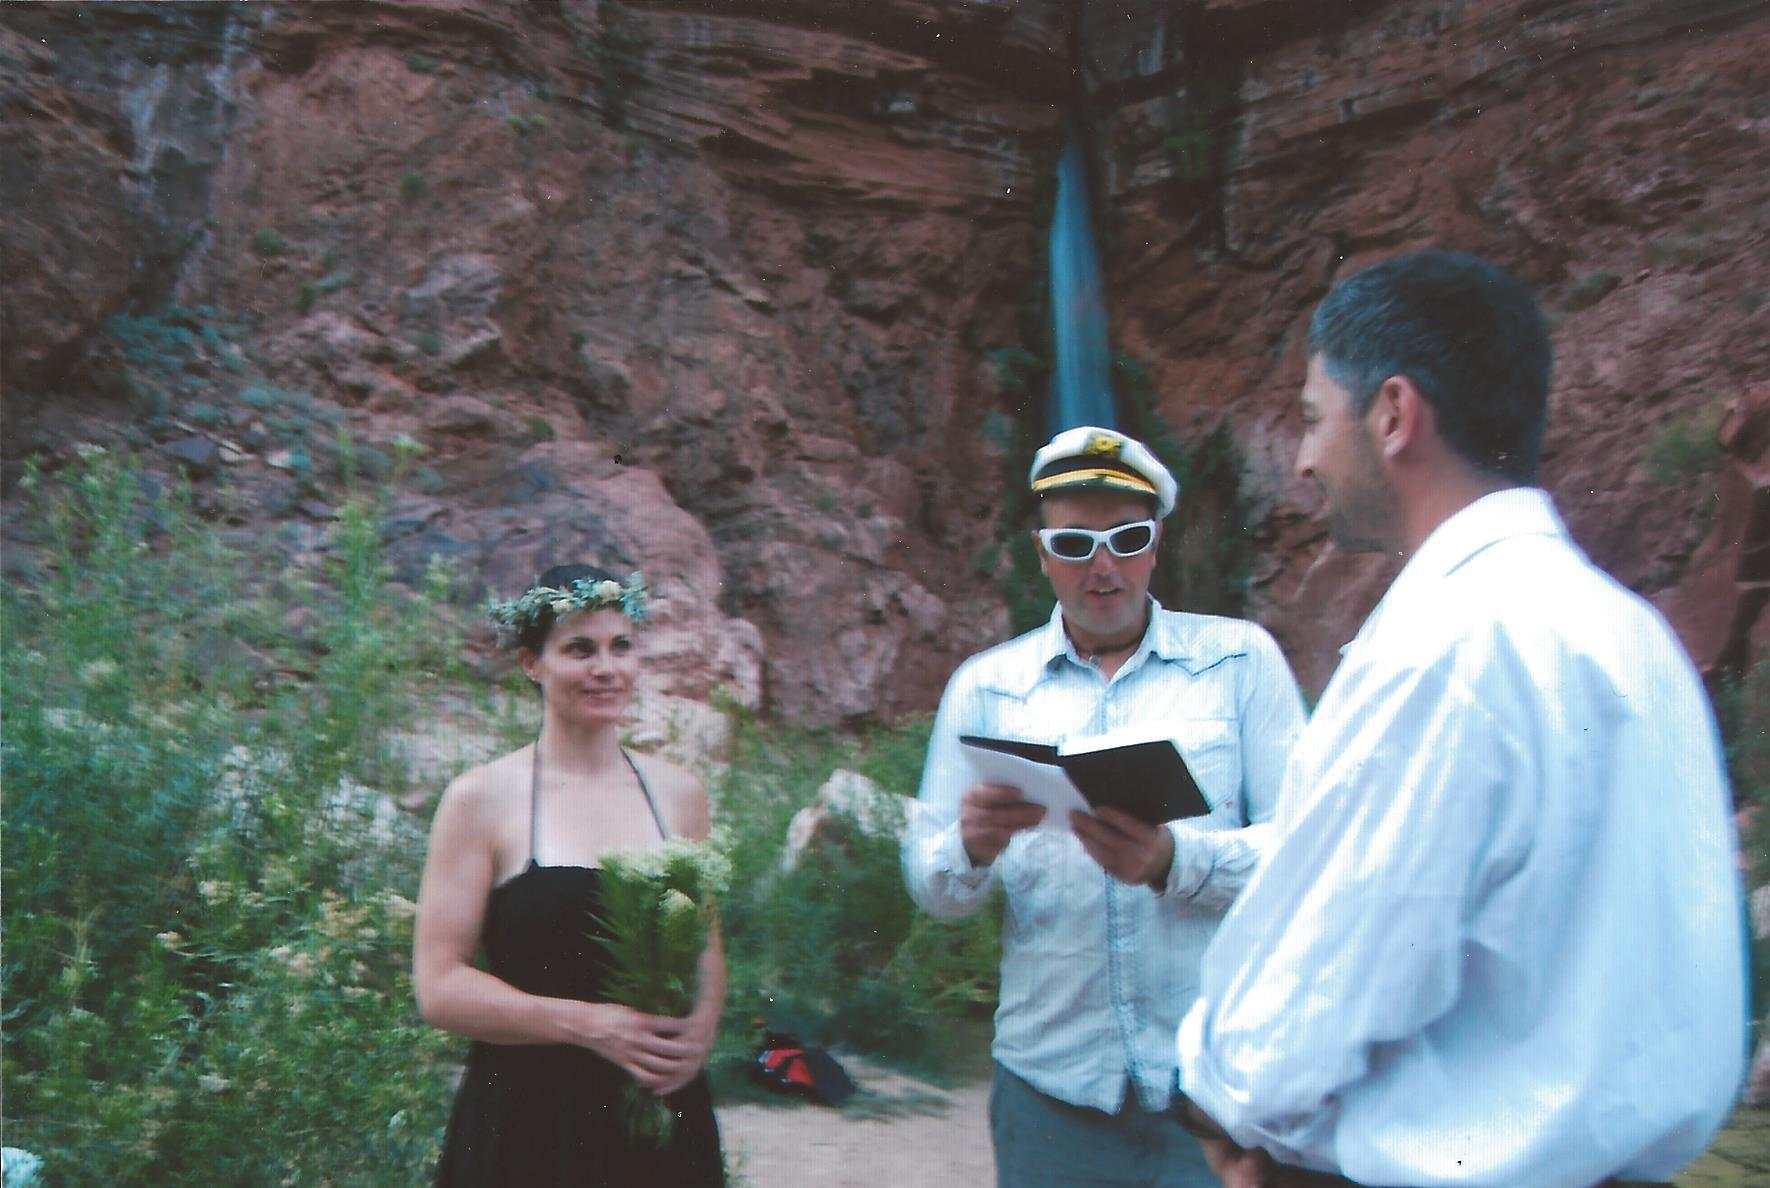 The Deer Creek Falls ceremony in Aug. 2013